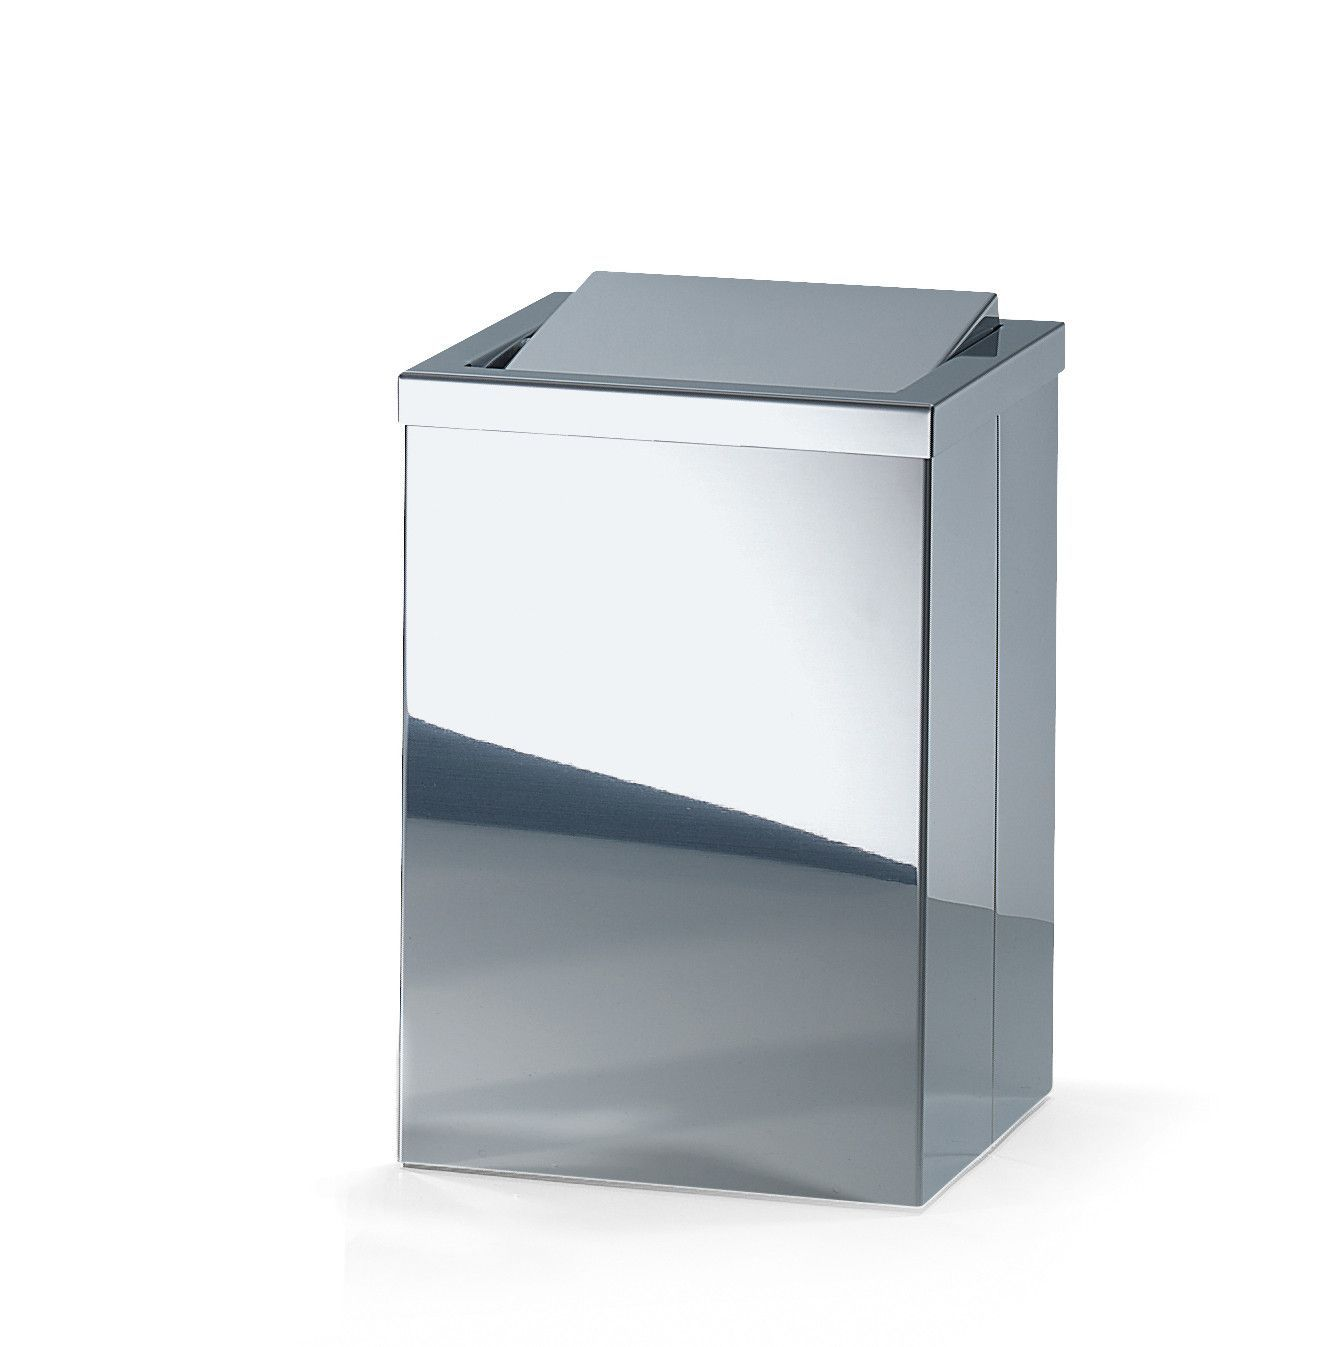 Dw 113 Stainless Steel Trash Can Square Wastebasket W Swing Lid